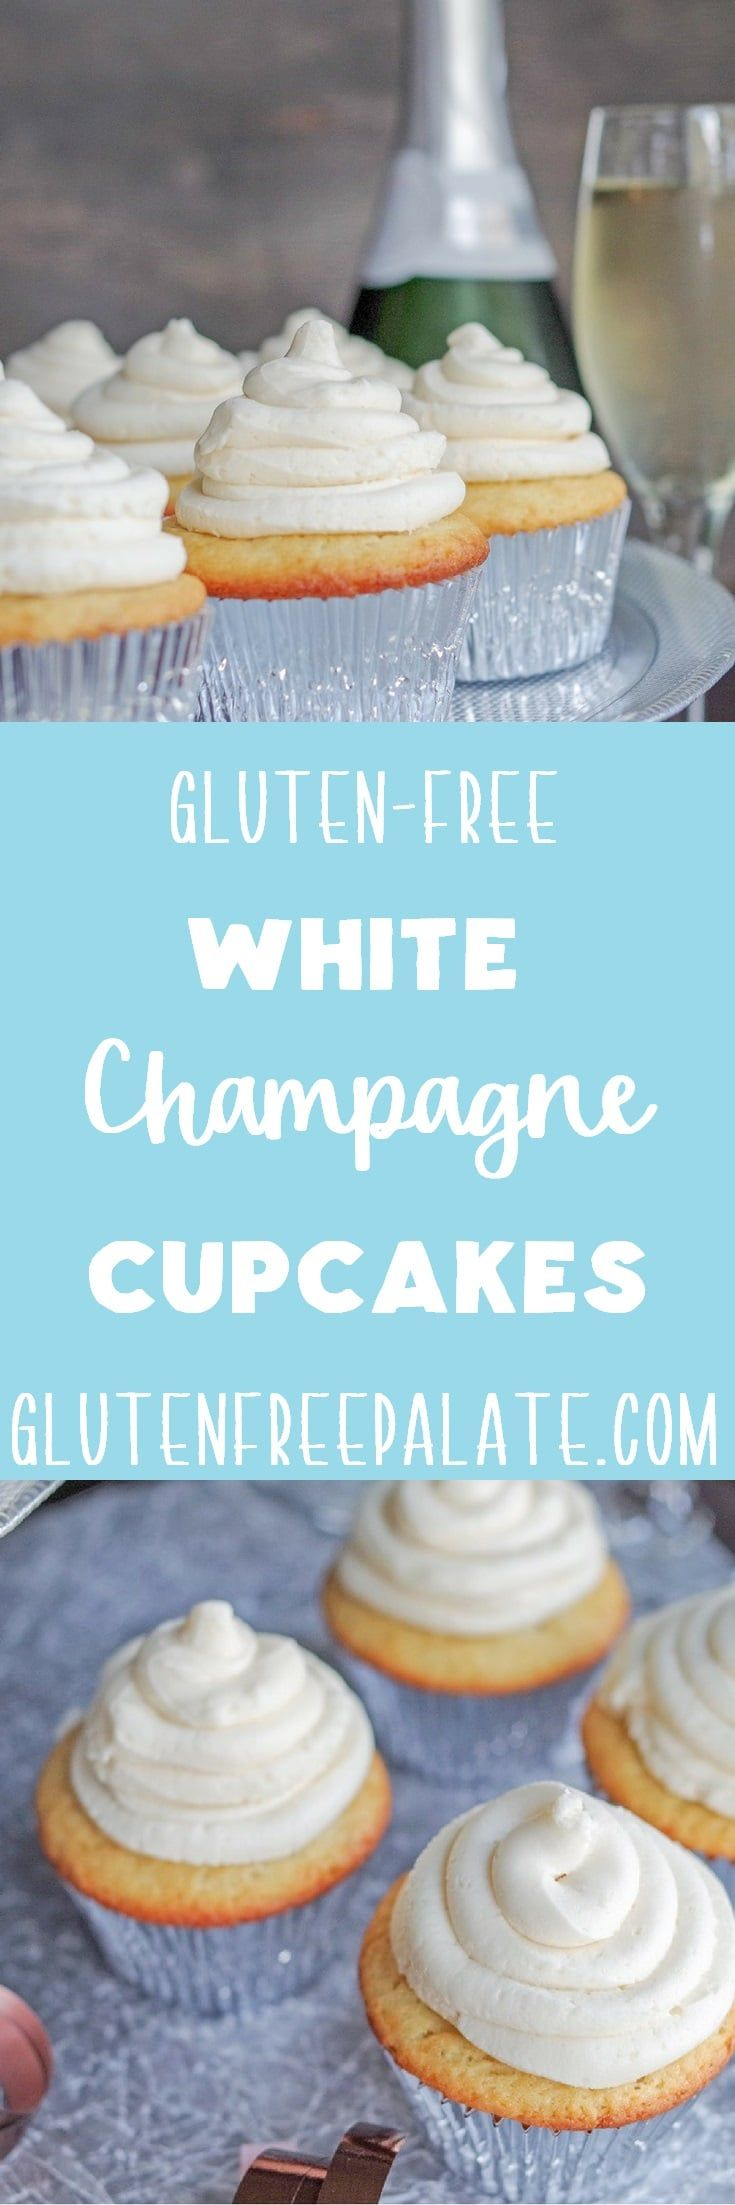 Gluten-Free White Champagne Cupcakes are perfect for celebrating weddings, birthdays, and New Year's! via @gfpalate